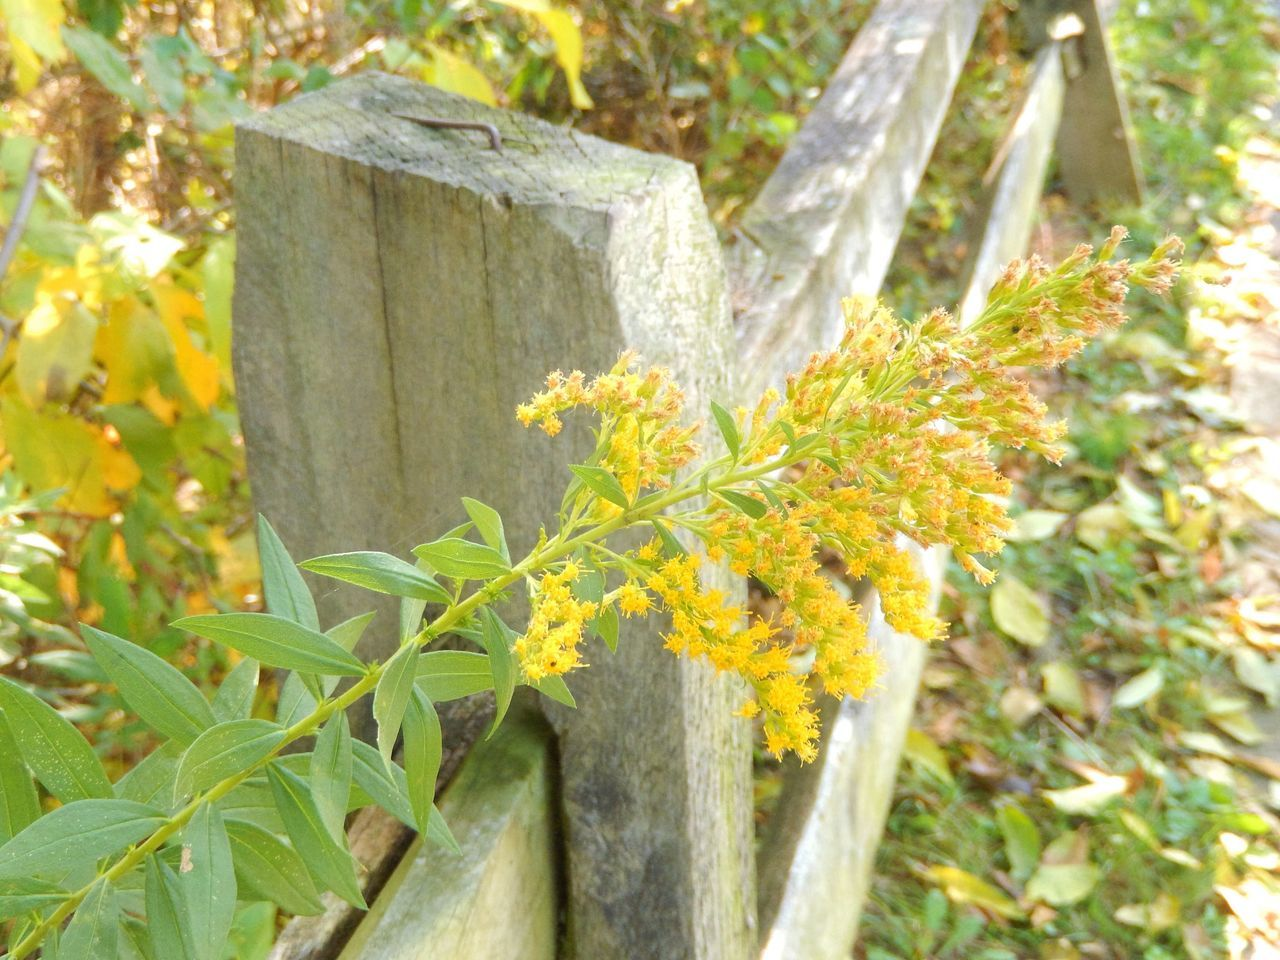 Goldenrod Wooden Fence Plant Yellow No People Outdoors Close-up EyeEm Best Shots - Landscape Green Color EyeEm EyeEm Gallery Eyeem Market Eyeem Photography Eyeem Collection Pennsylvania My Year My View